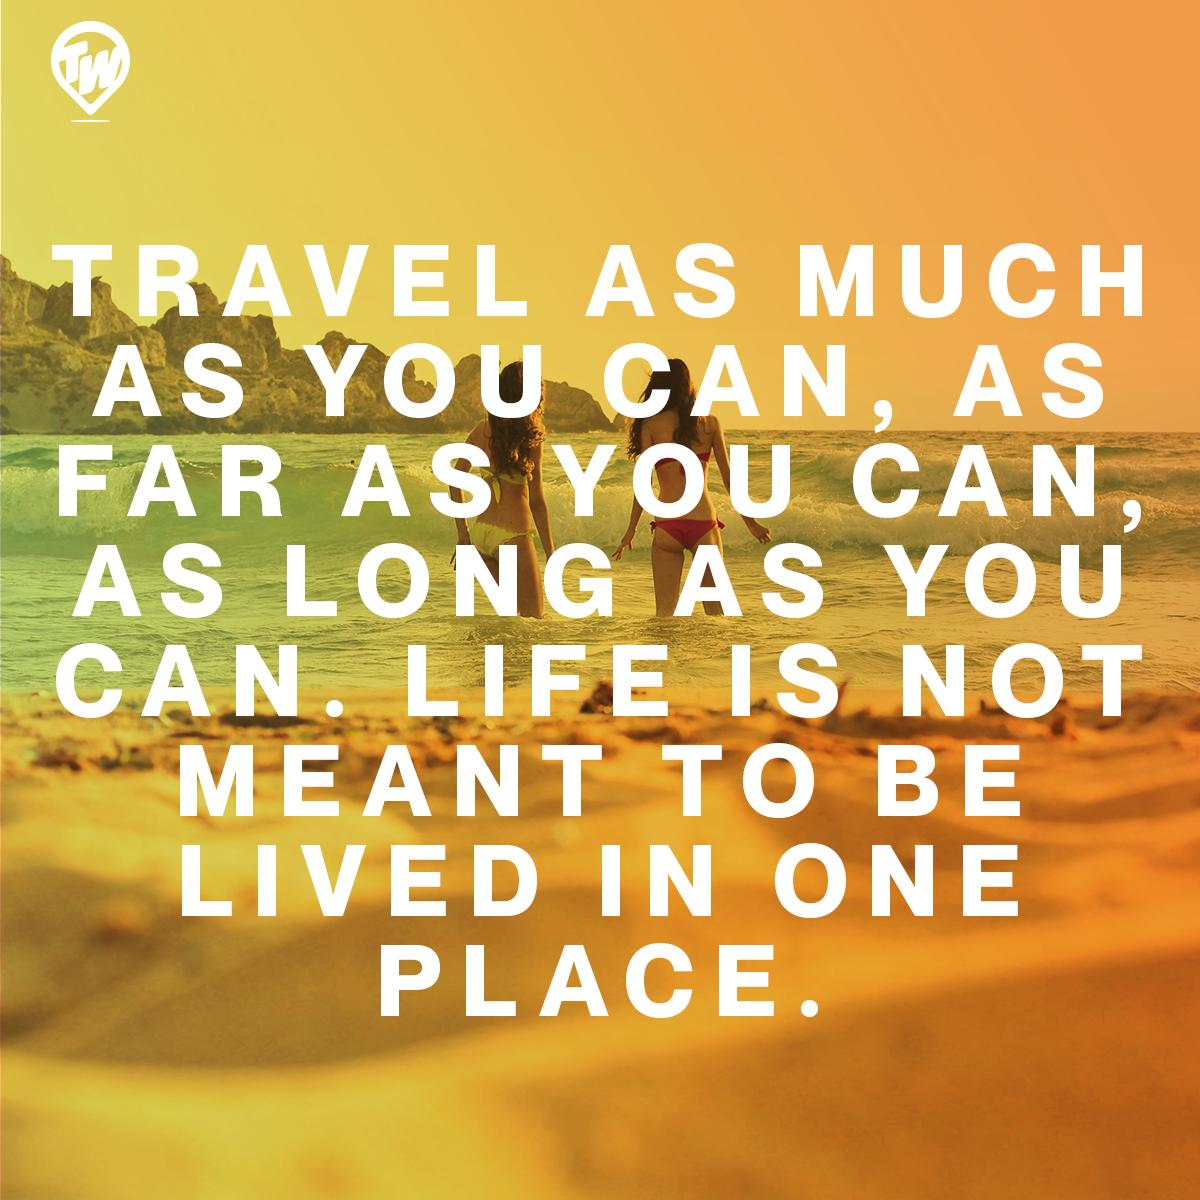 Tours For The World's photo on #MotivationMonday